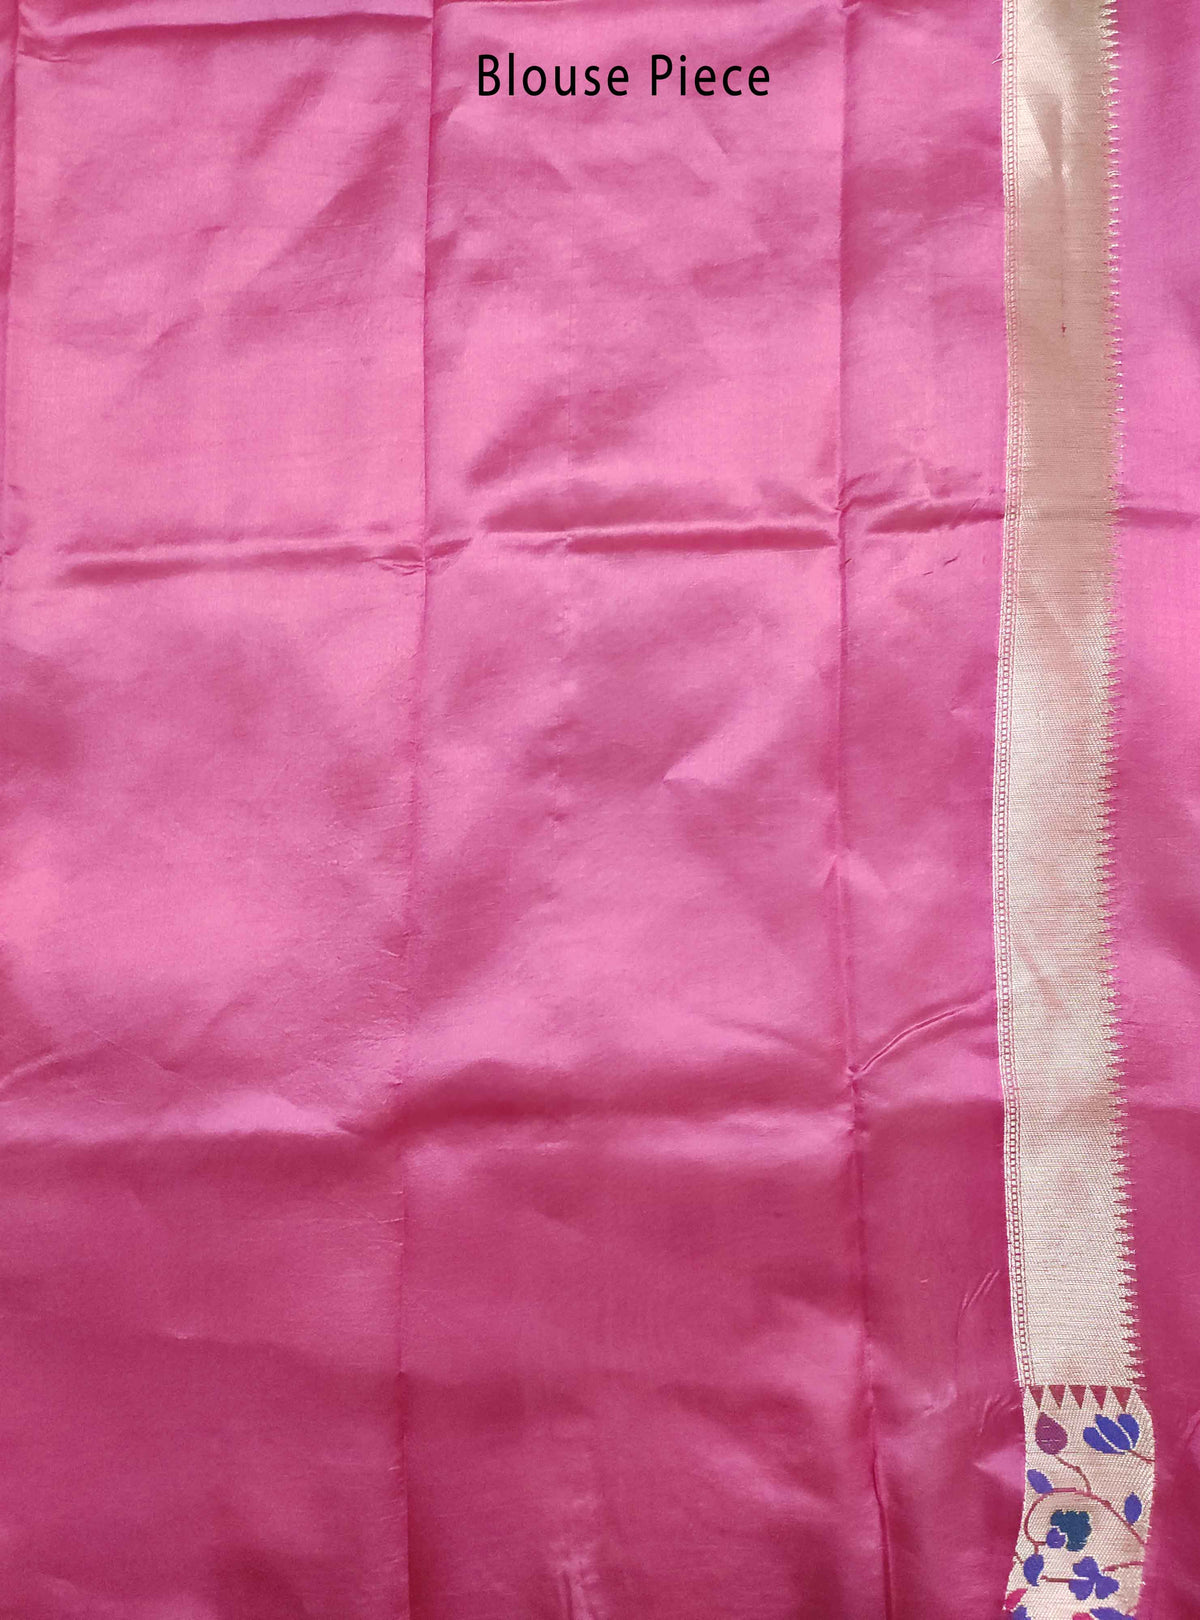 Deep pink dupion silk Banarasi saree with flower boota and meenedar border (5) Blouse Piece